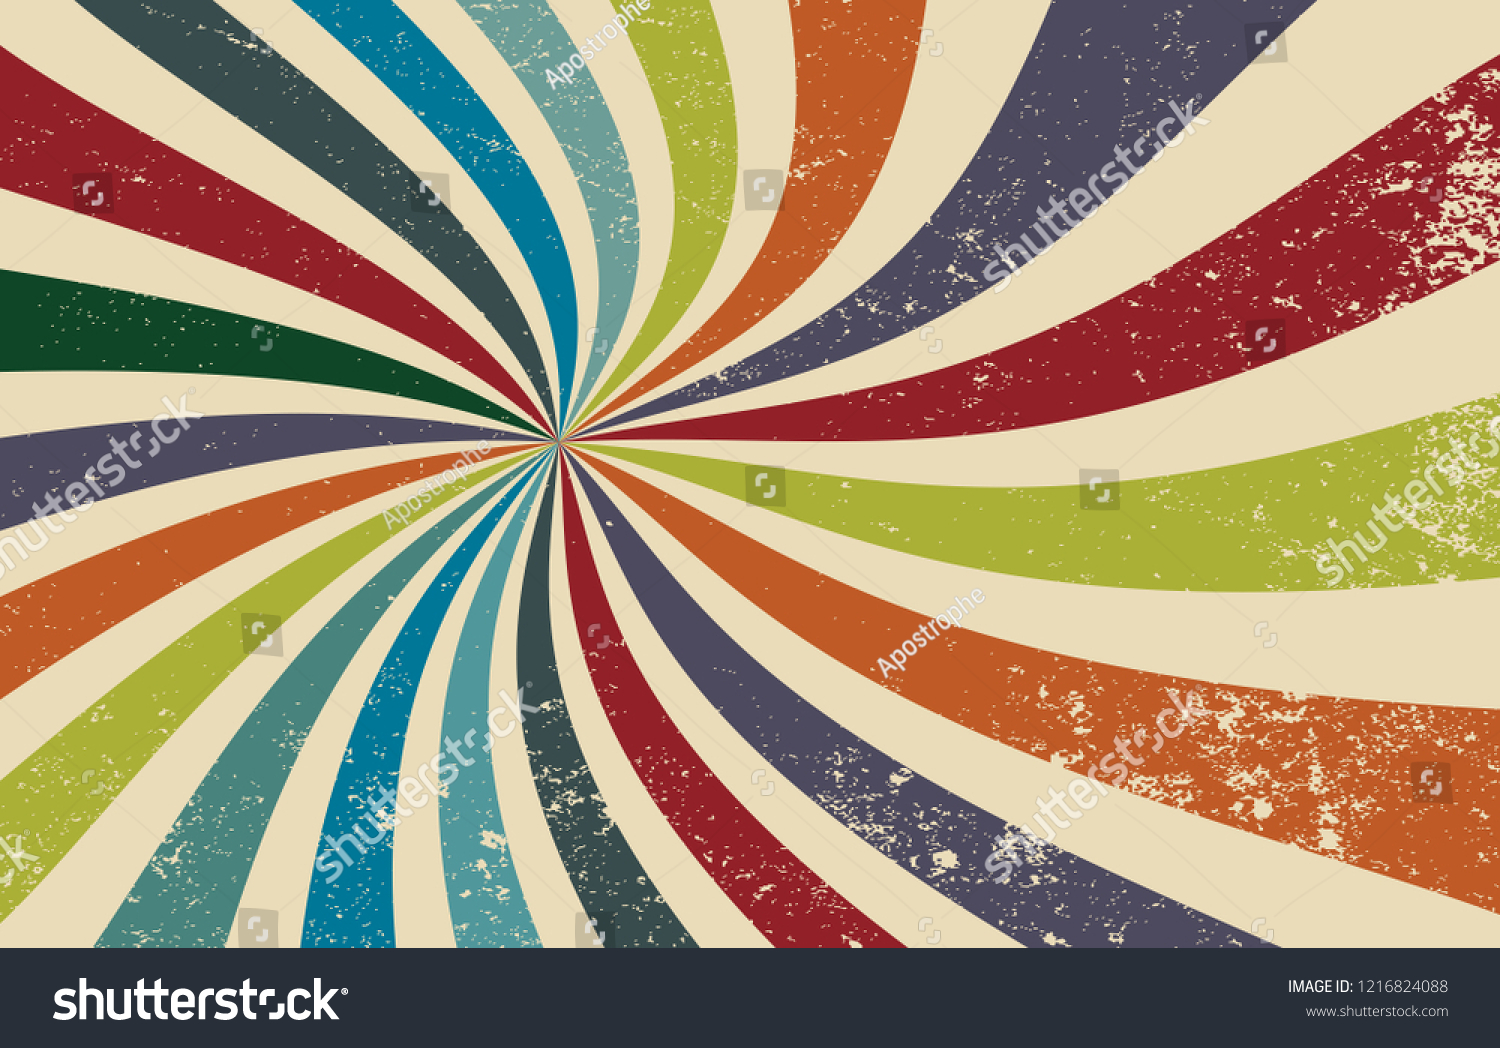 retro grunge starburst or sunburst background vector pattern with a dark vintage color palette of red orange blue green and beige white in a spiral or swirled radial striped design